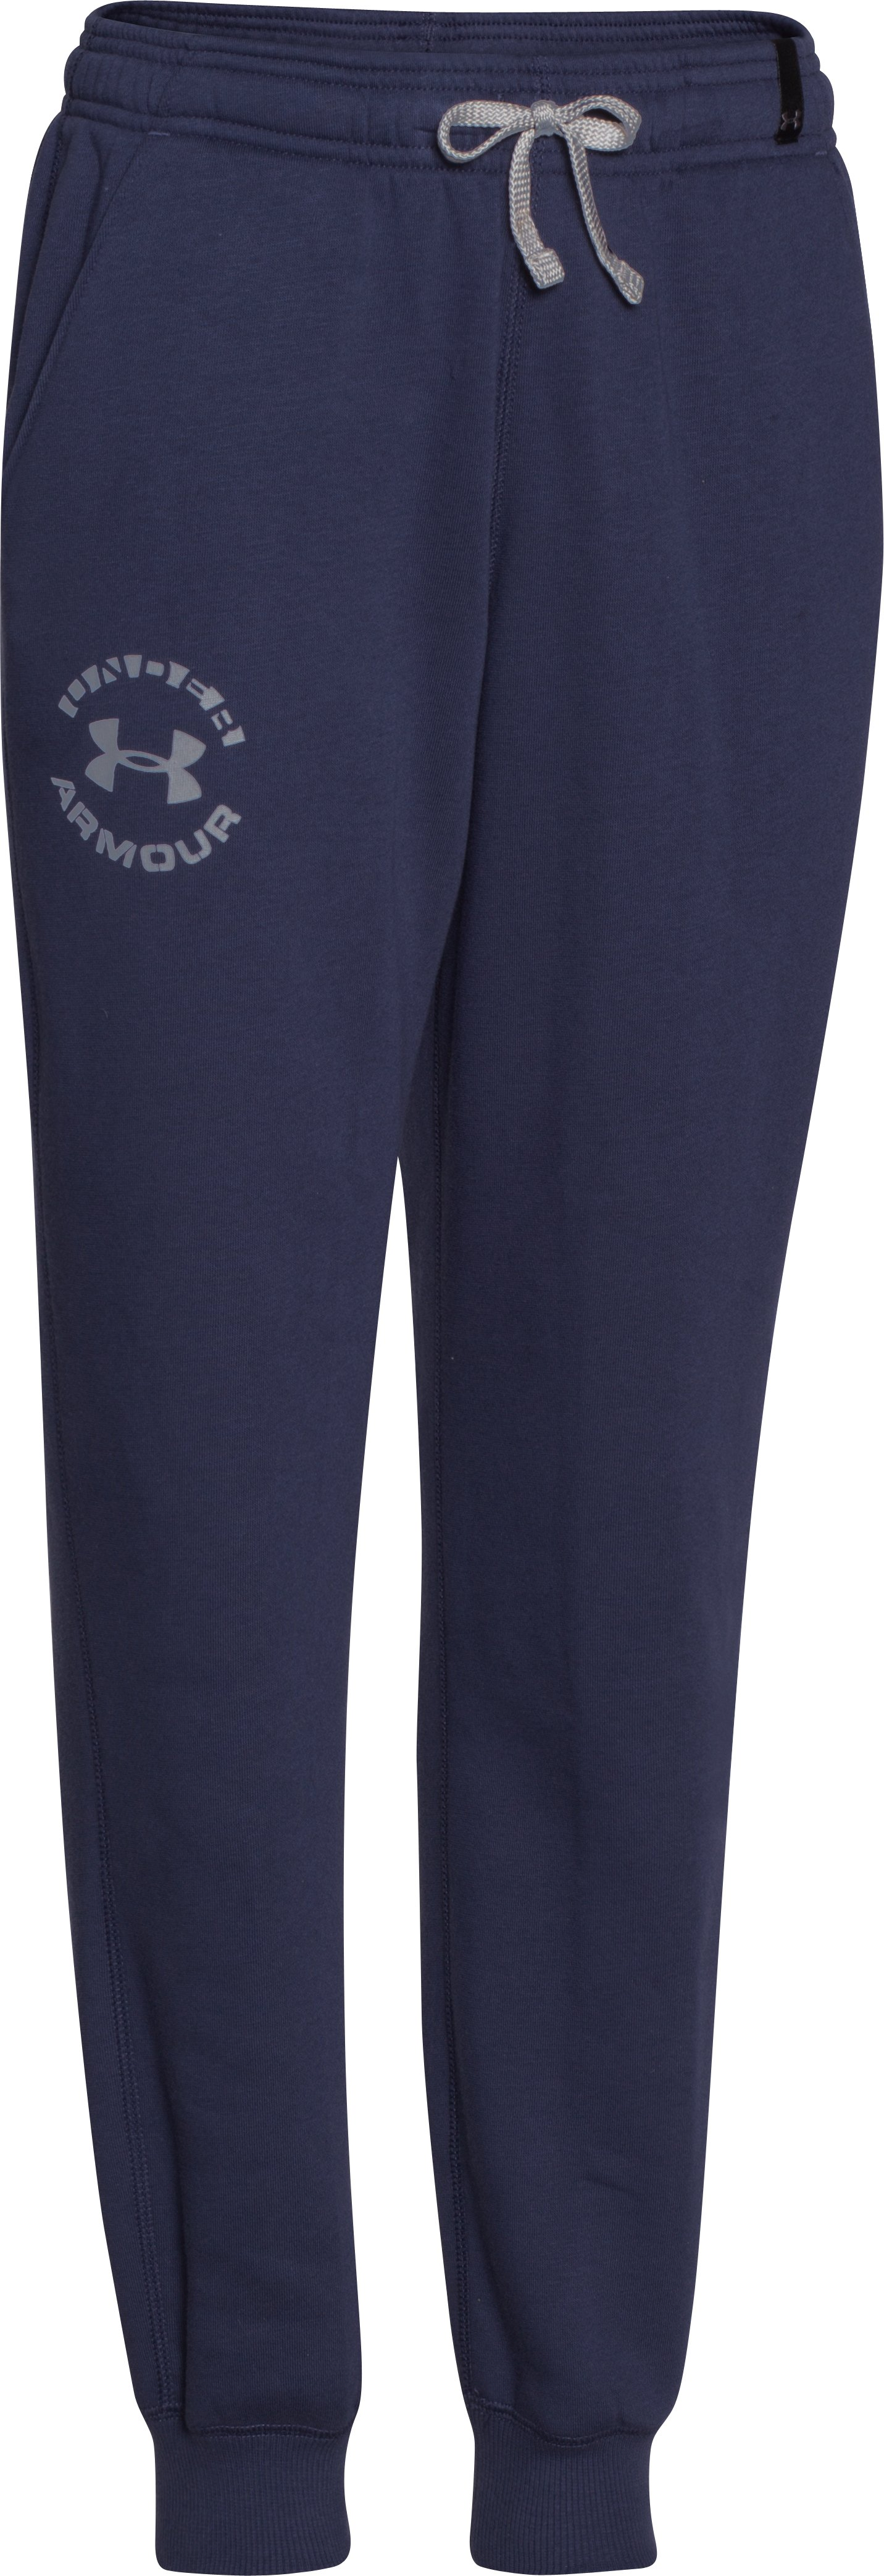 Boys' UA Rival Fleece Jogger Pants, BLUE KNIGHT, zoomed image